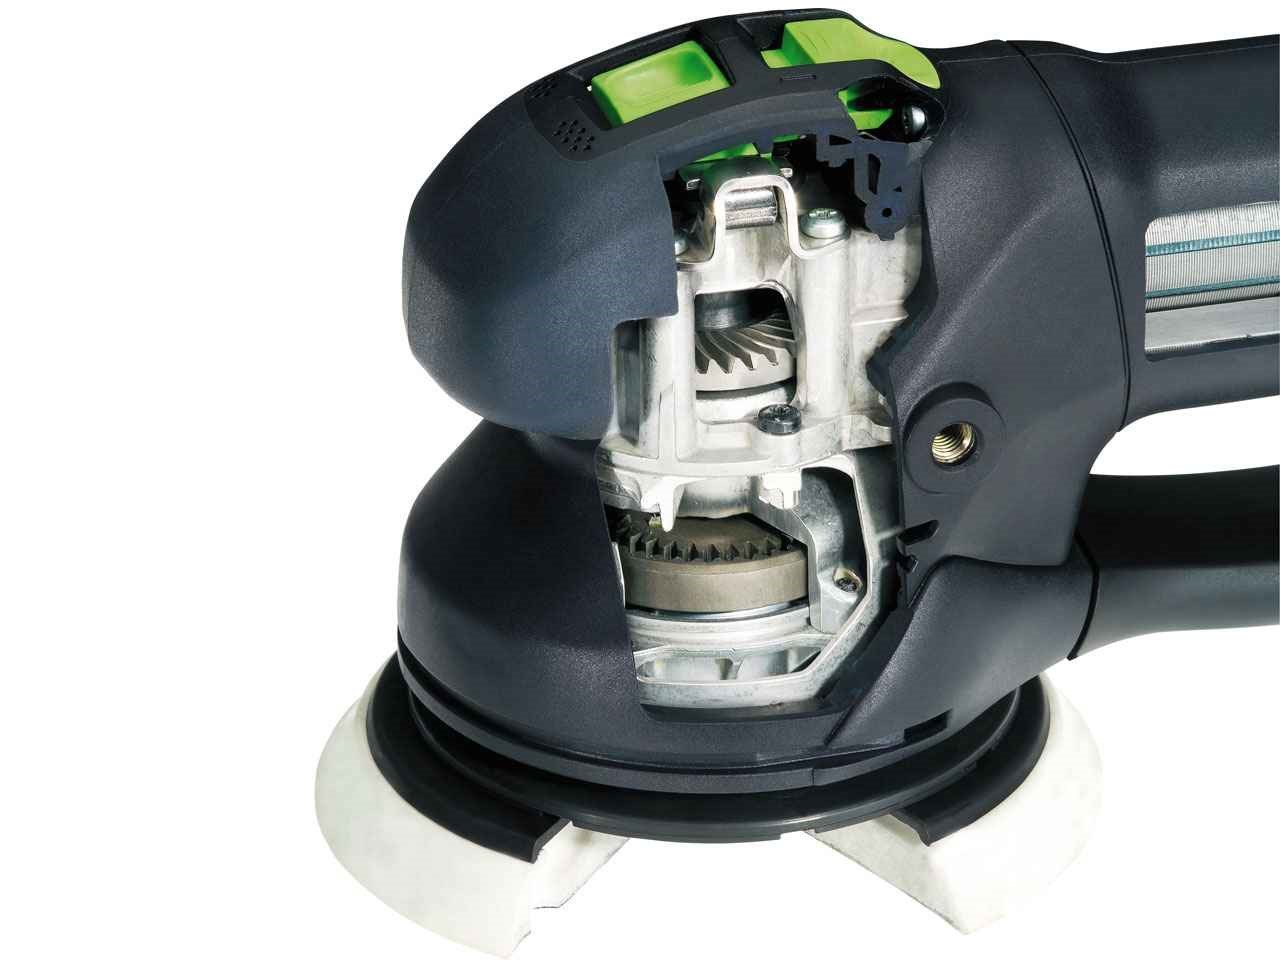 festool ro150 feq plus gb 110v geared eccentric rotex sander. Black Bedroom Furniture Sets. Home Design Ideas